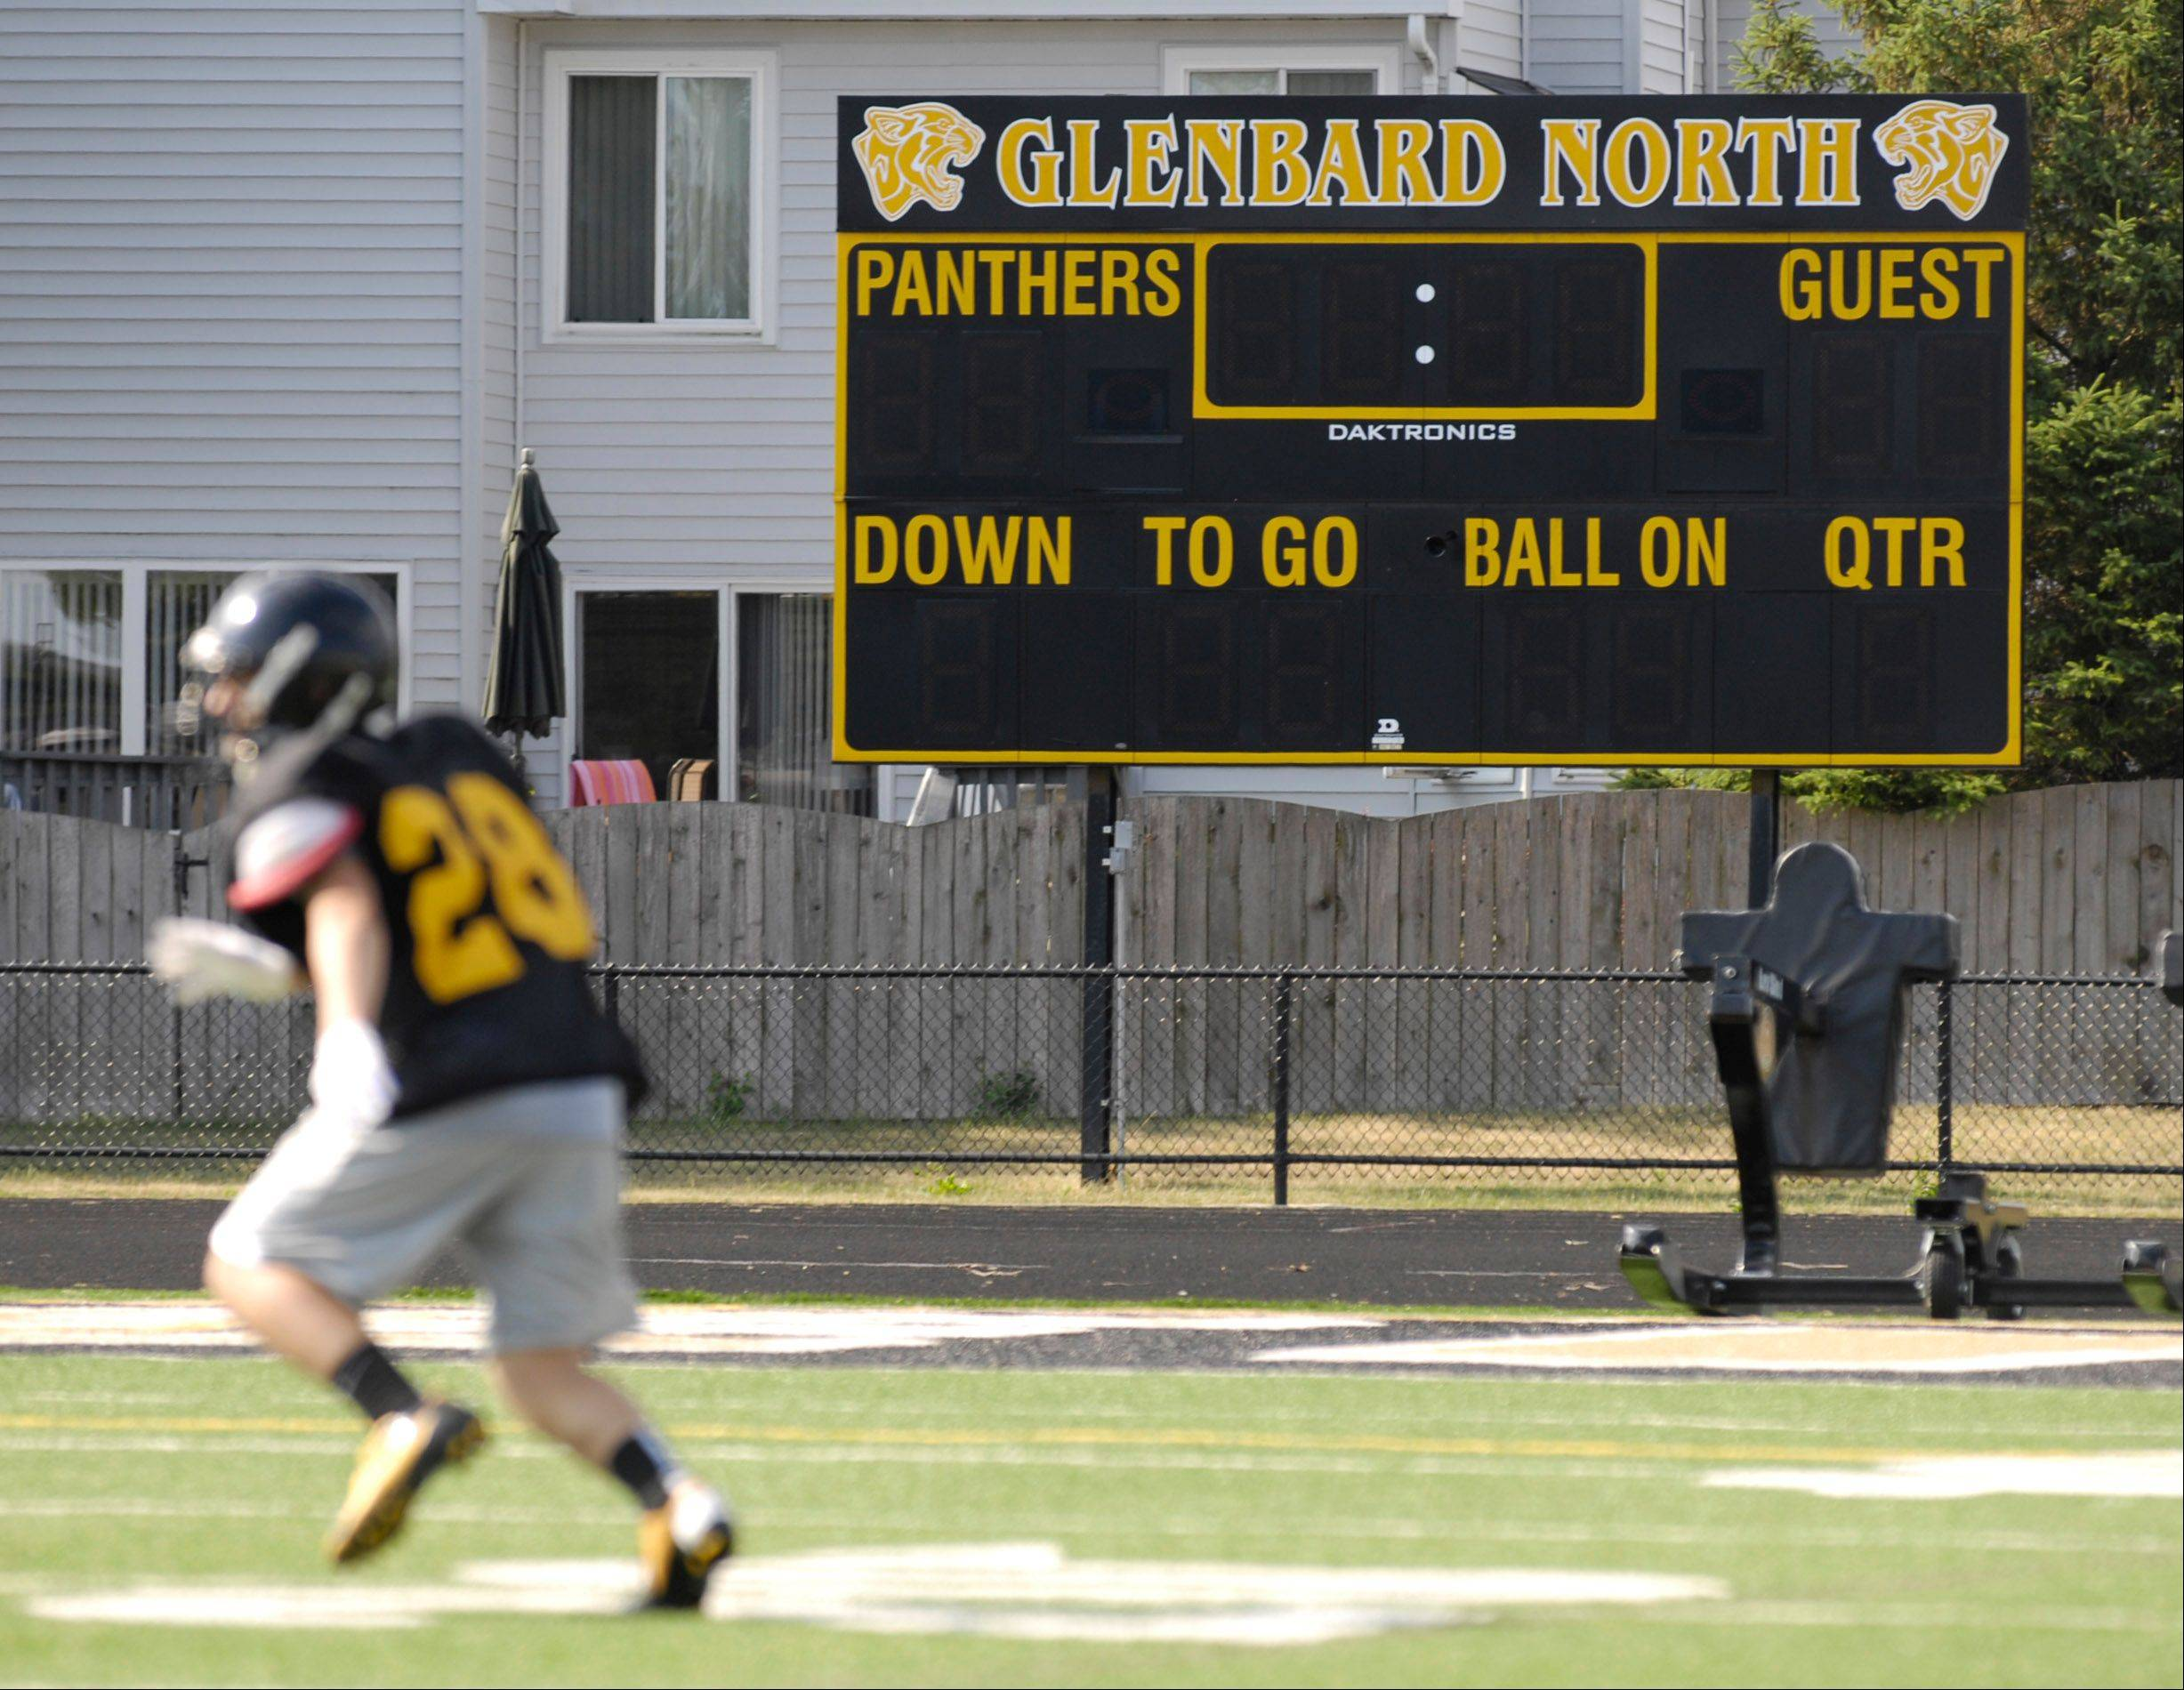 Scoreboard ads for the Glenbards?